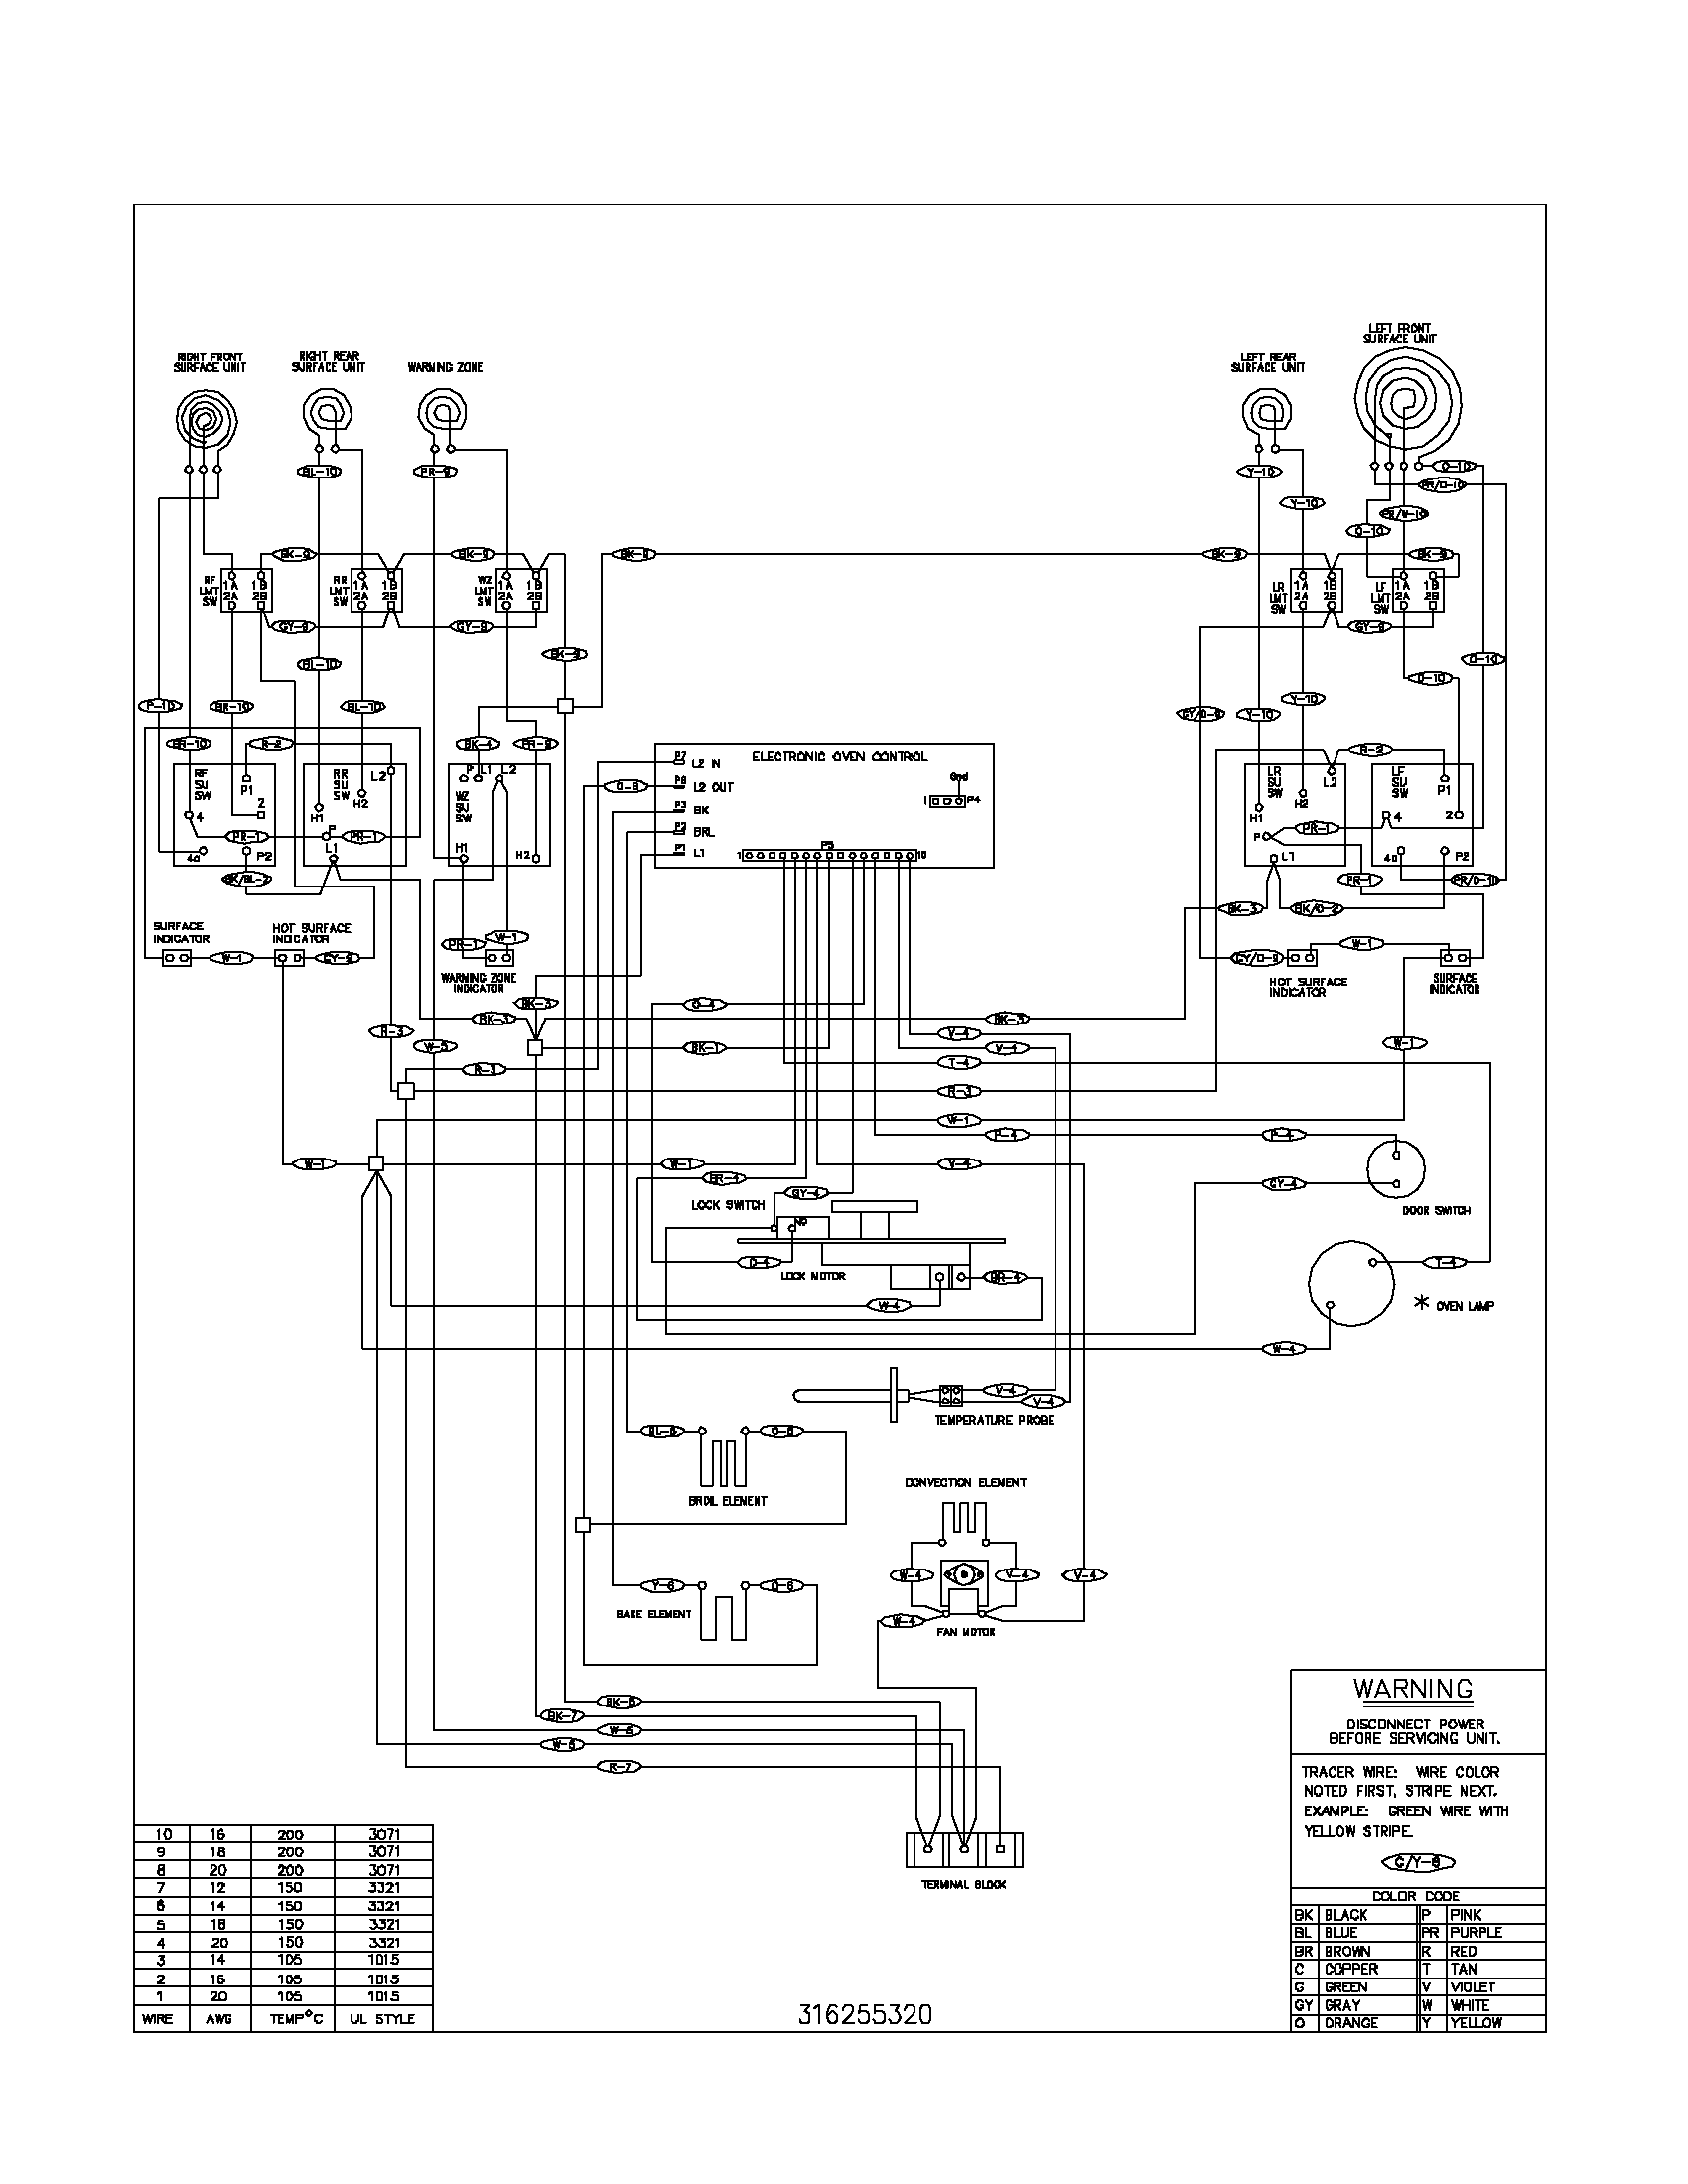 wiring diagram for whirlpool electric water heater 2004 wrx ecu fefl88acc range timer stove clocks